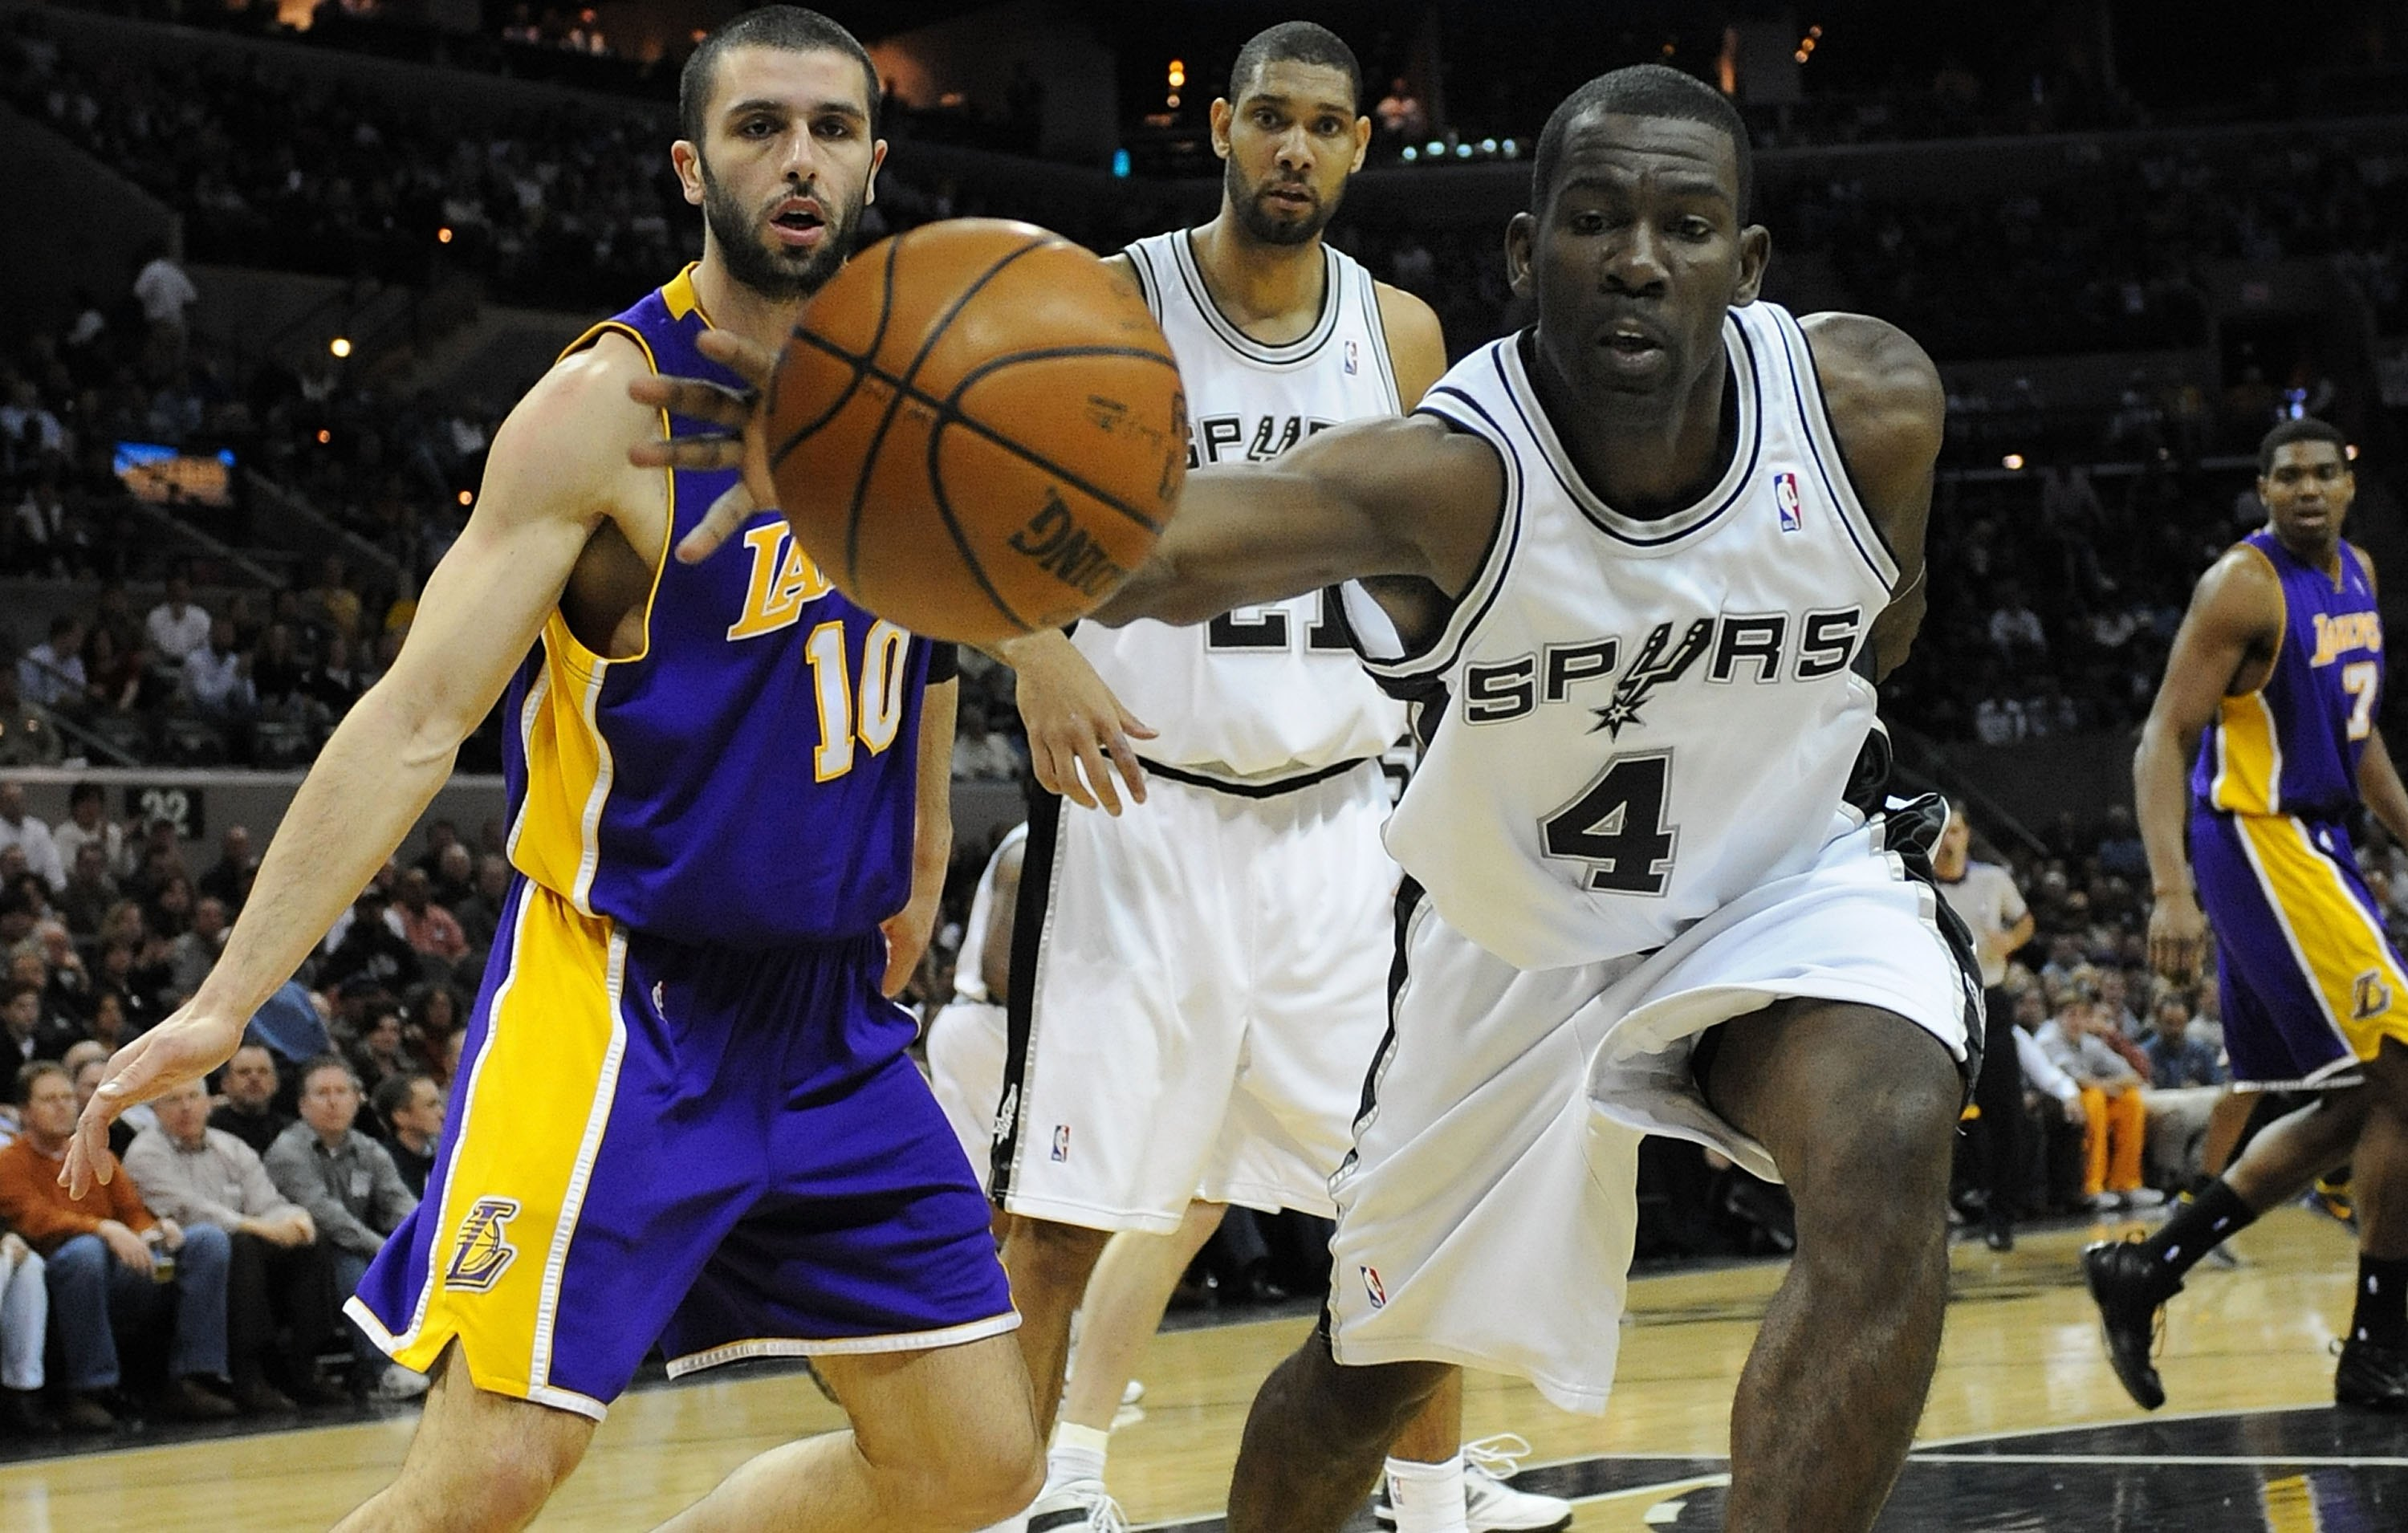 SAN ANTONIO - JANUARY 14:  Michael Finley #4 of the San Antonio Spurs during play against the Los Angeles Lakers on January 14, 2009 at AT&T Center in San Antonio, Texas.  NOTE TO USER: User expressly acknowledges and agrees that, by downloading and/or us